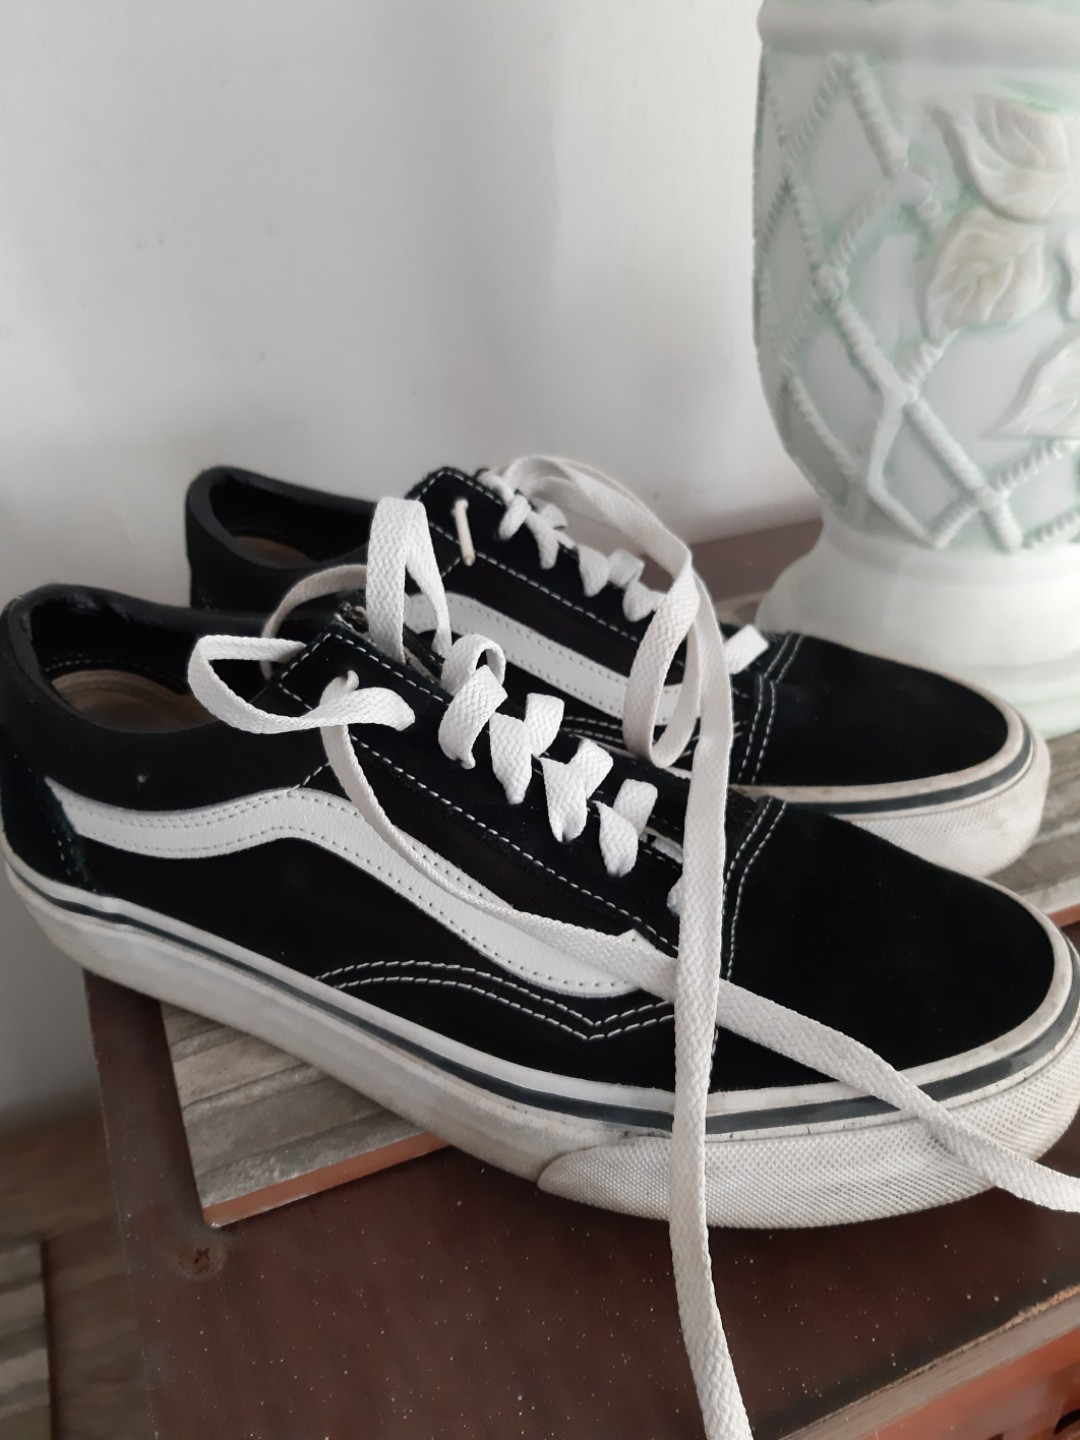 bc5825b9c4 Home · Women s Fashion · Shoes · Sneakers. photo photo photo photo photo